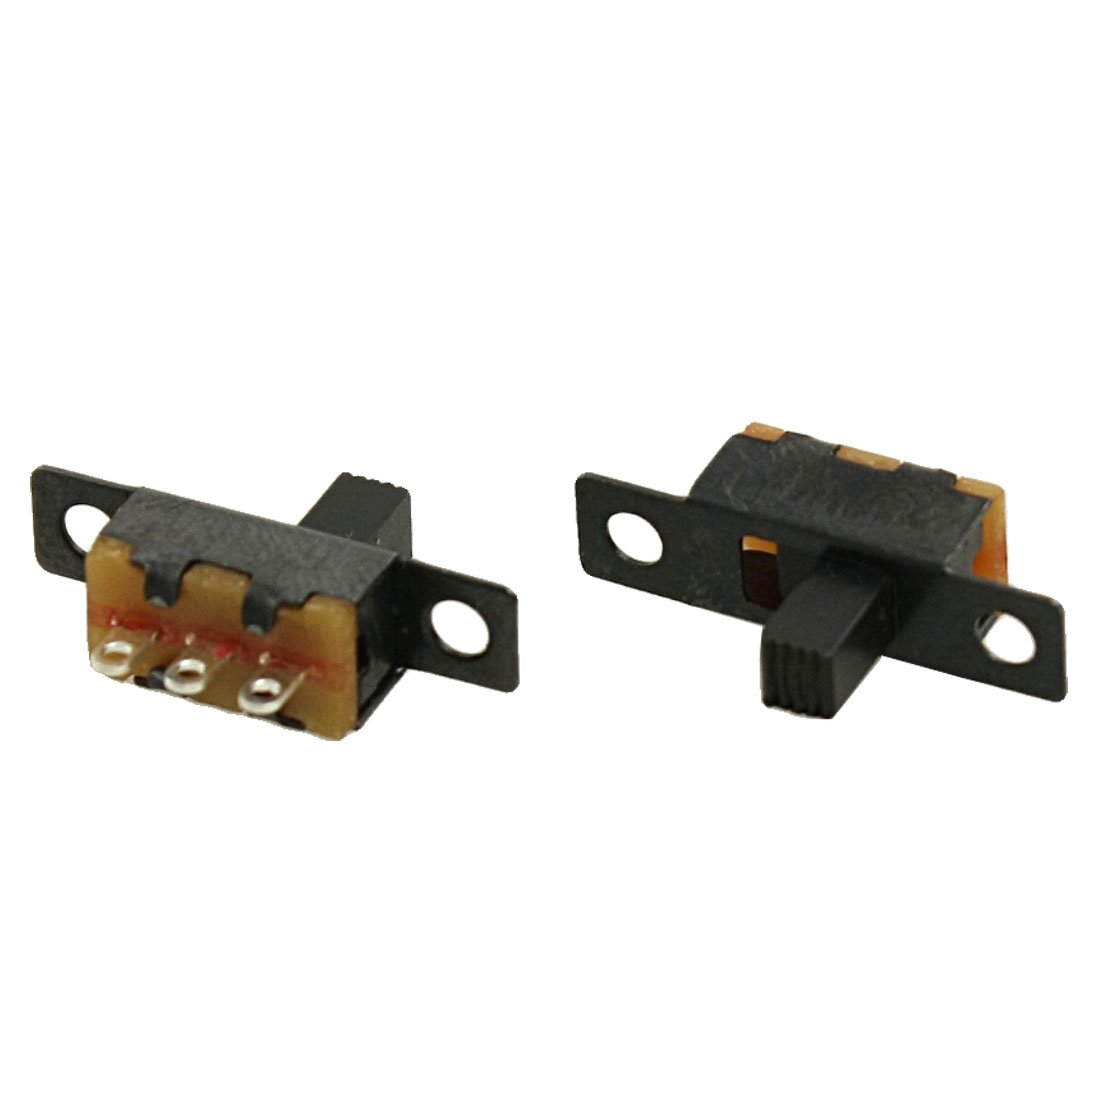 Hot sale5 Pcs 50V 0.5A 3 Pin 2 Position On/OFF 1P2T SPDT Slide Switch 3 Pin new 50pcs lot miniature slide switch spdt 3 pin pcb 2 position 1p2t side knob handle high 3mm sk12d07vg3